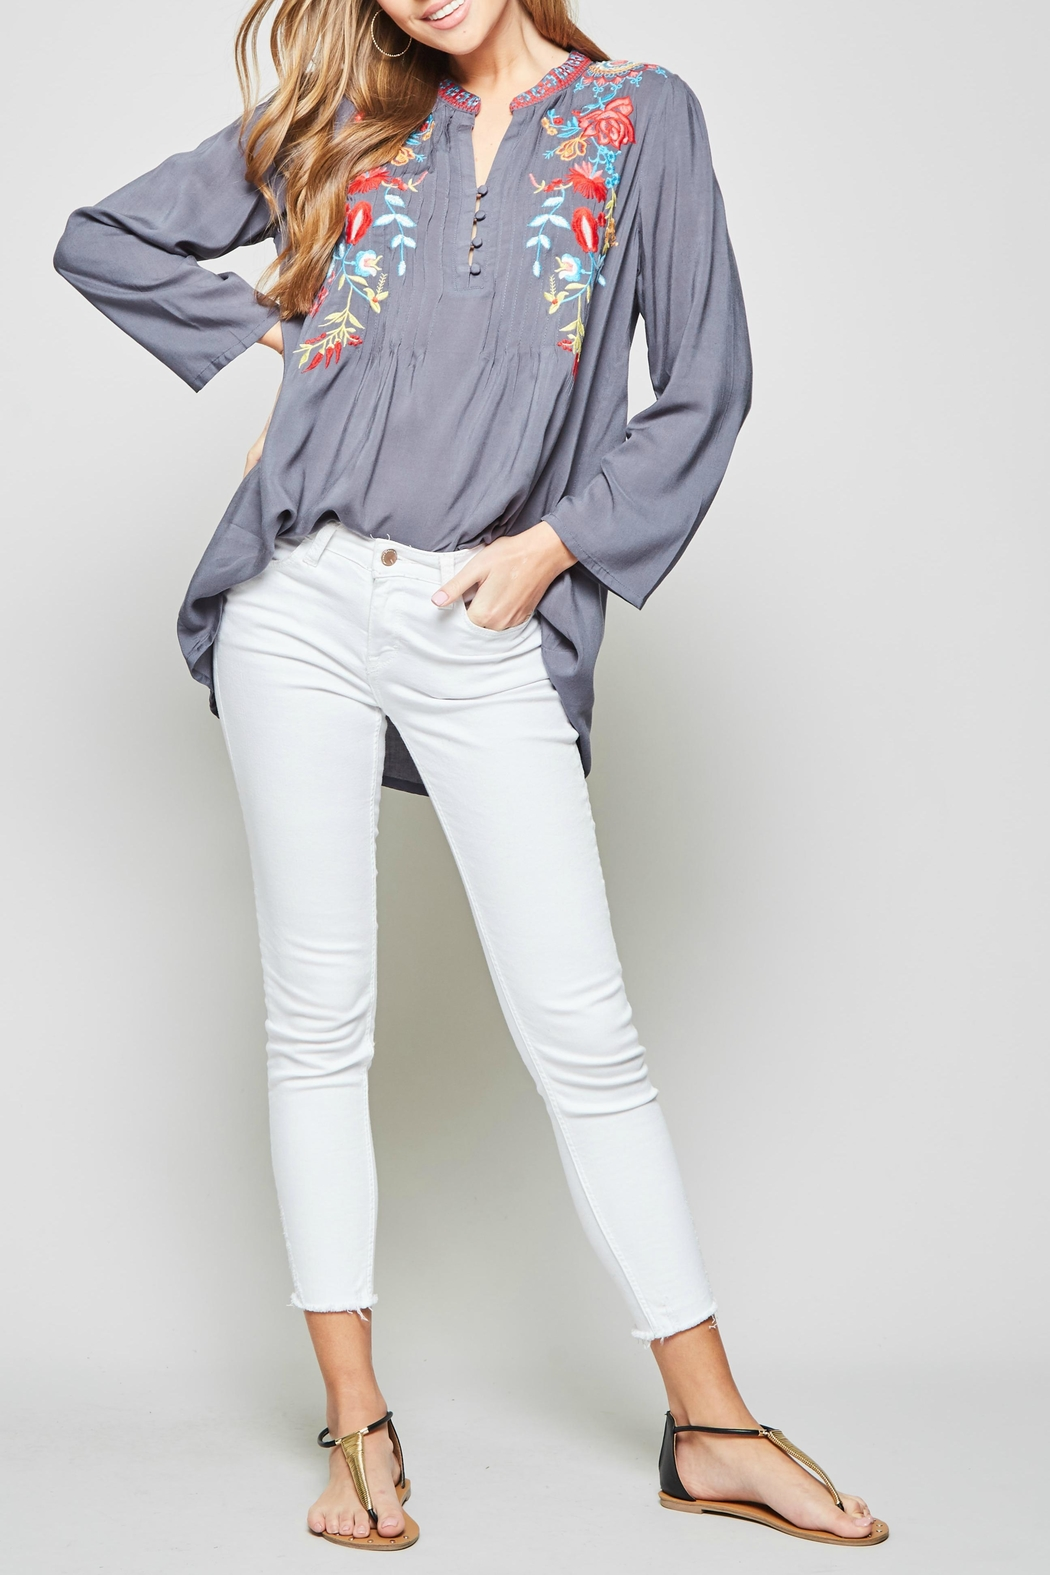 Andree by Unit Embroidered Mandarin Blouse - Main Image